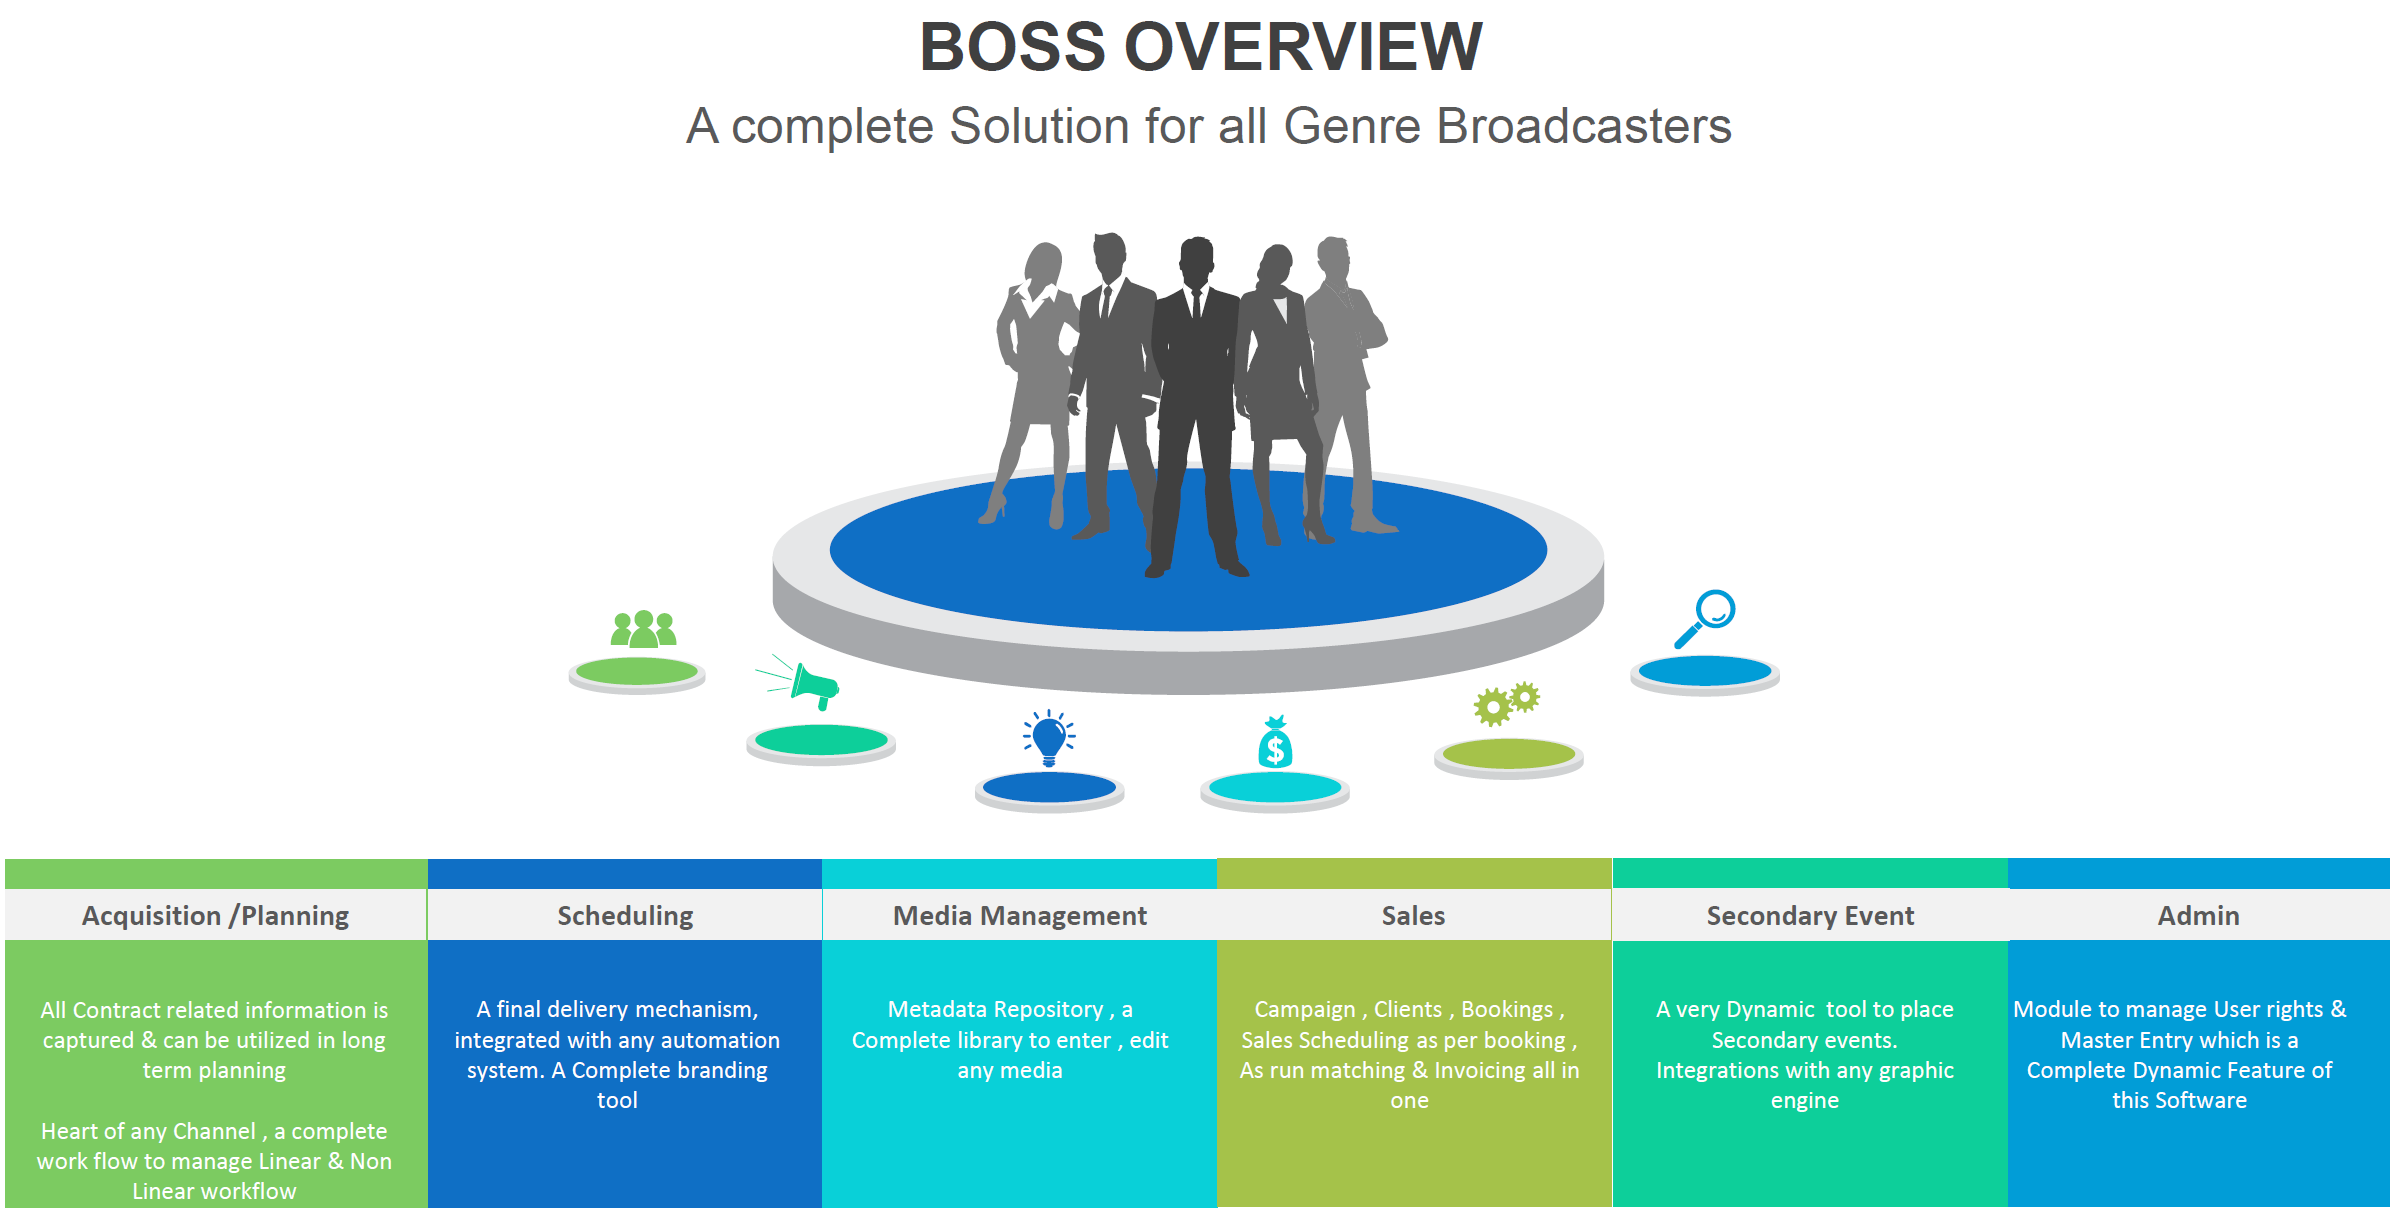 BOSS overview